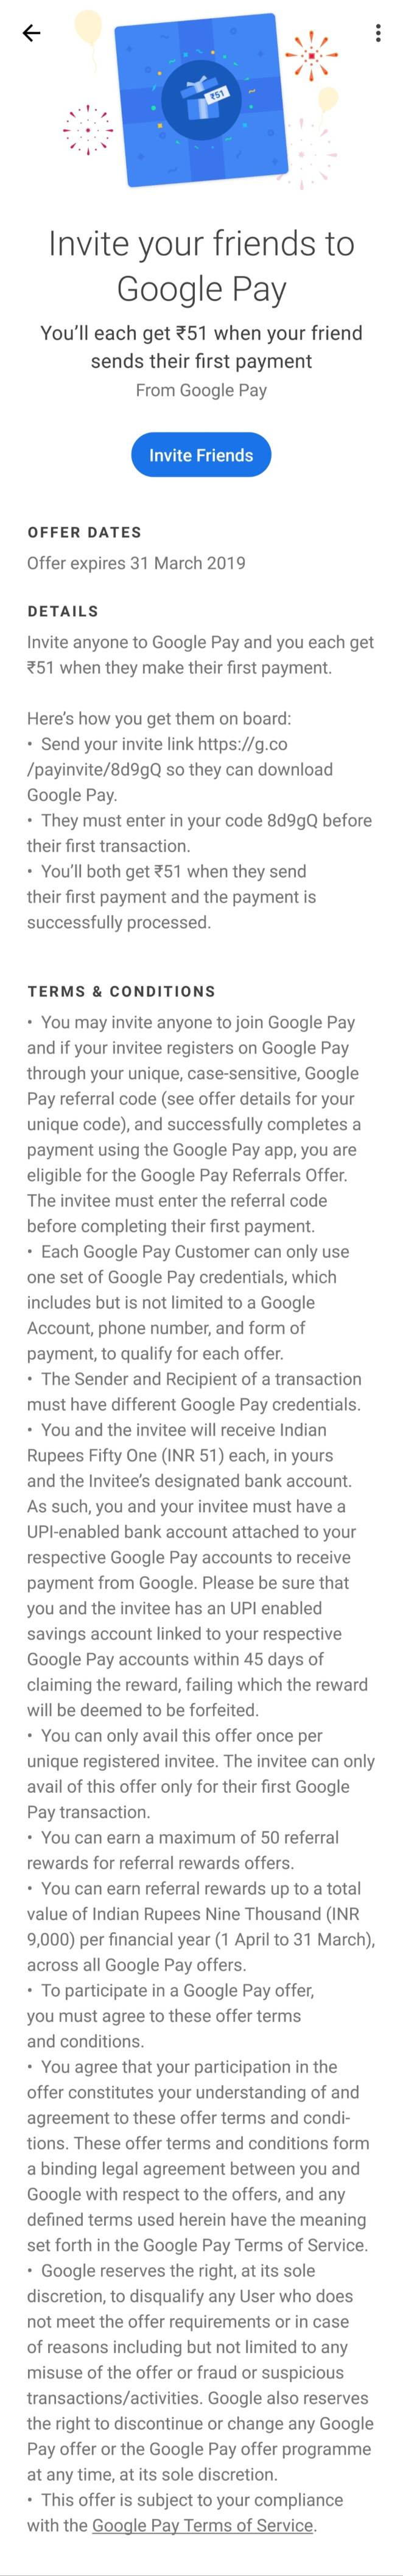 Tez referral terms & conditions